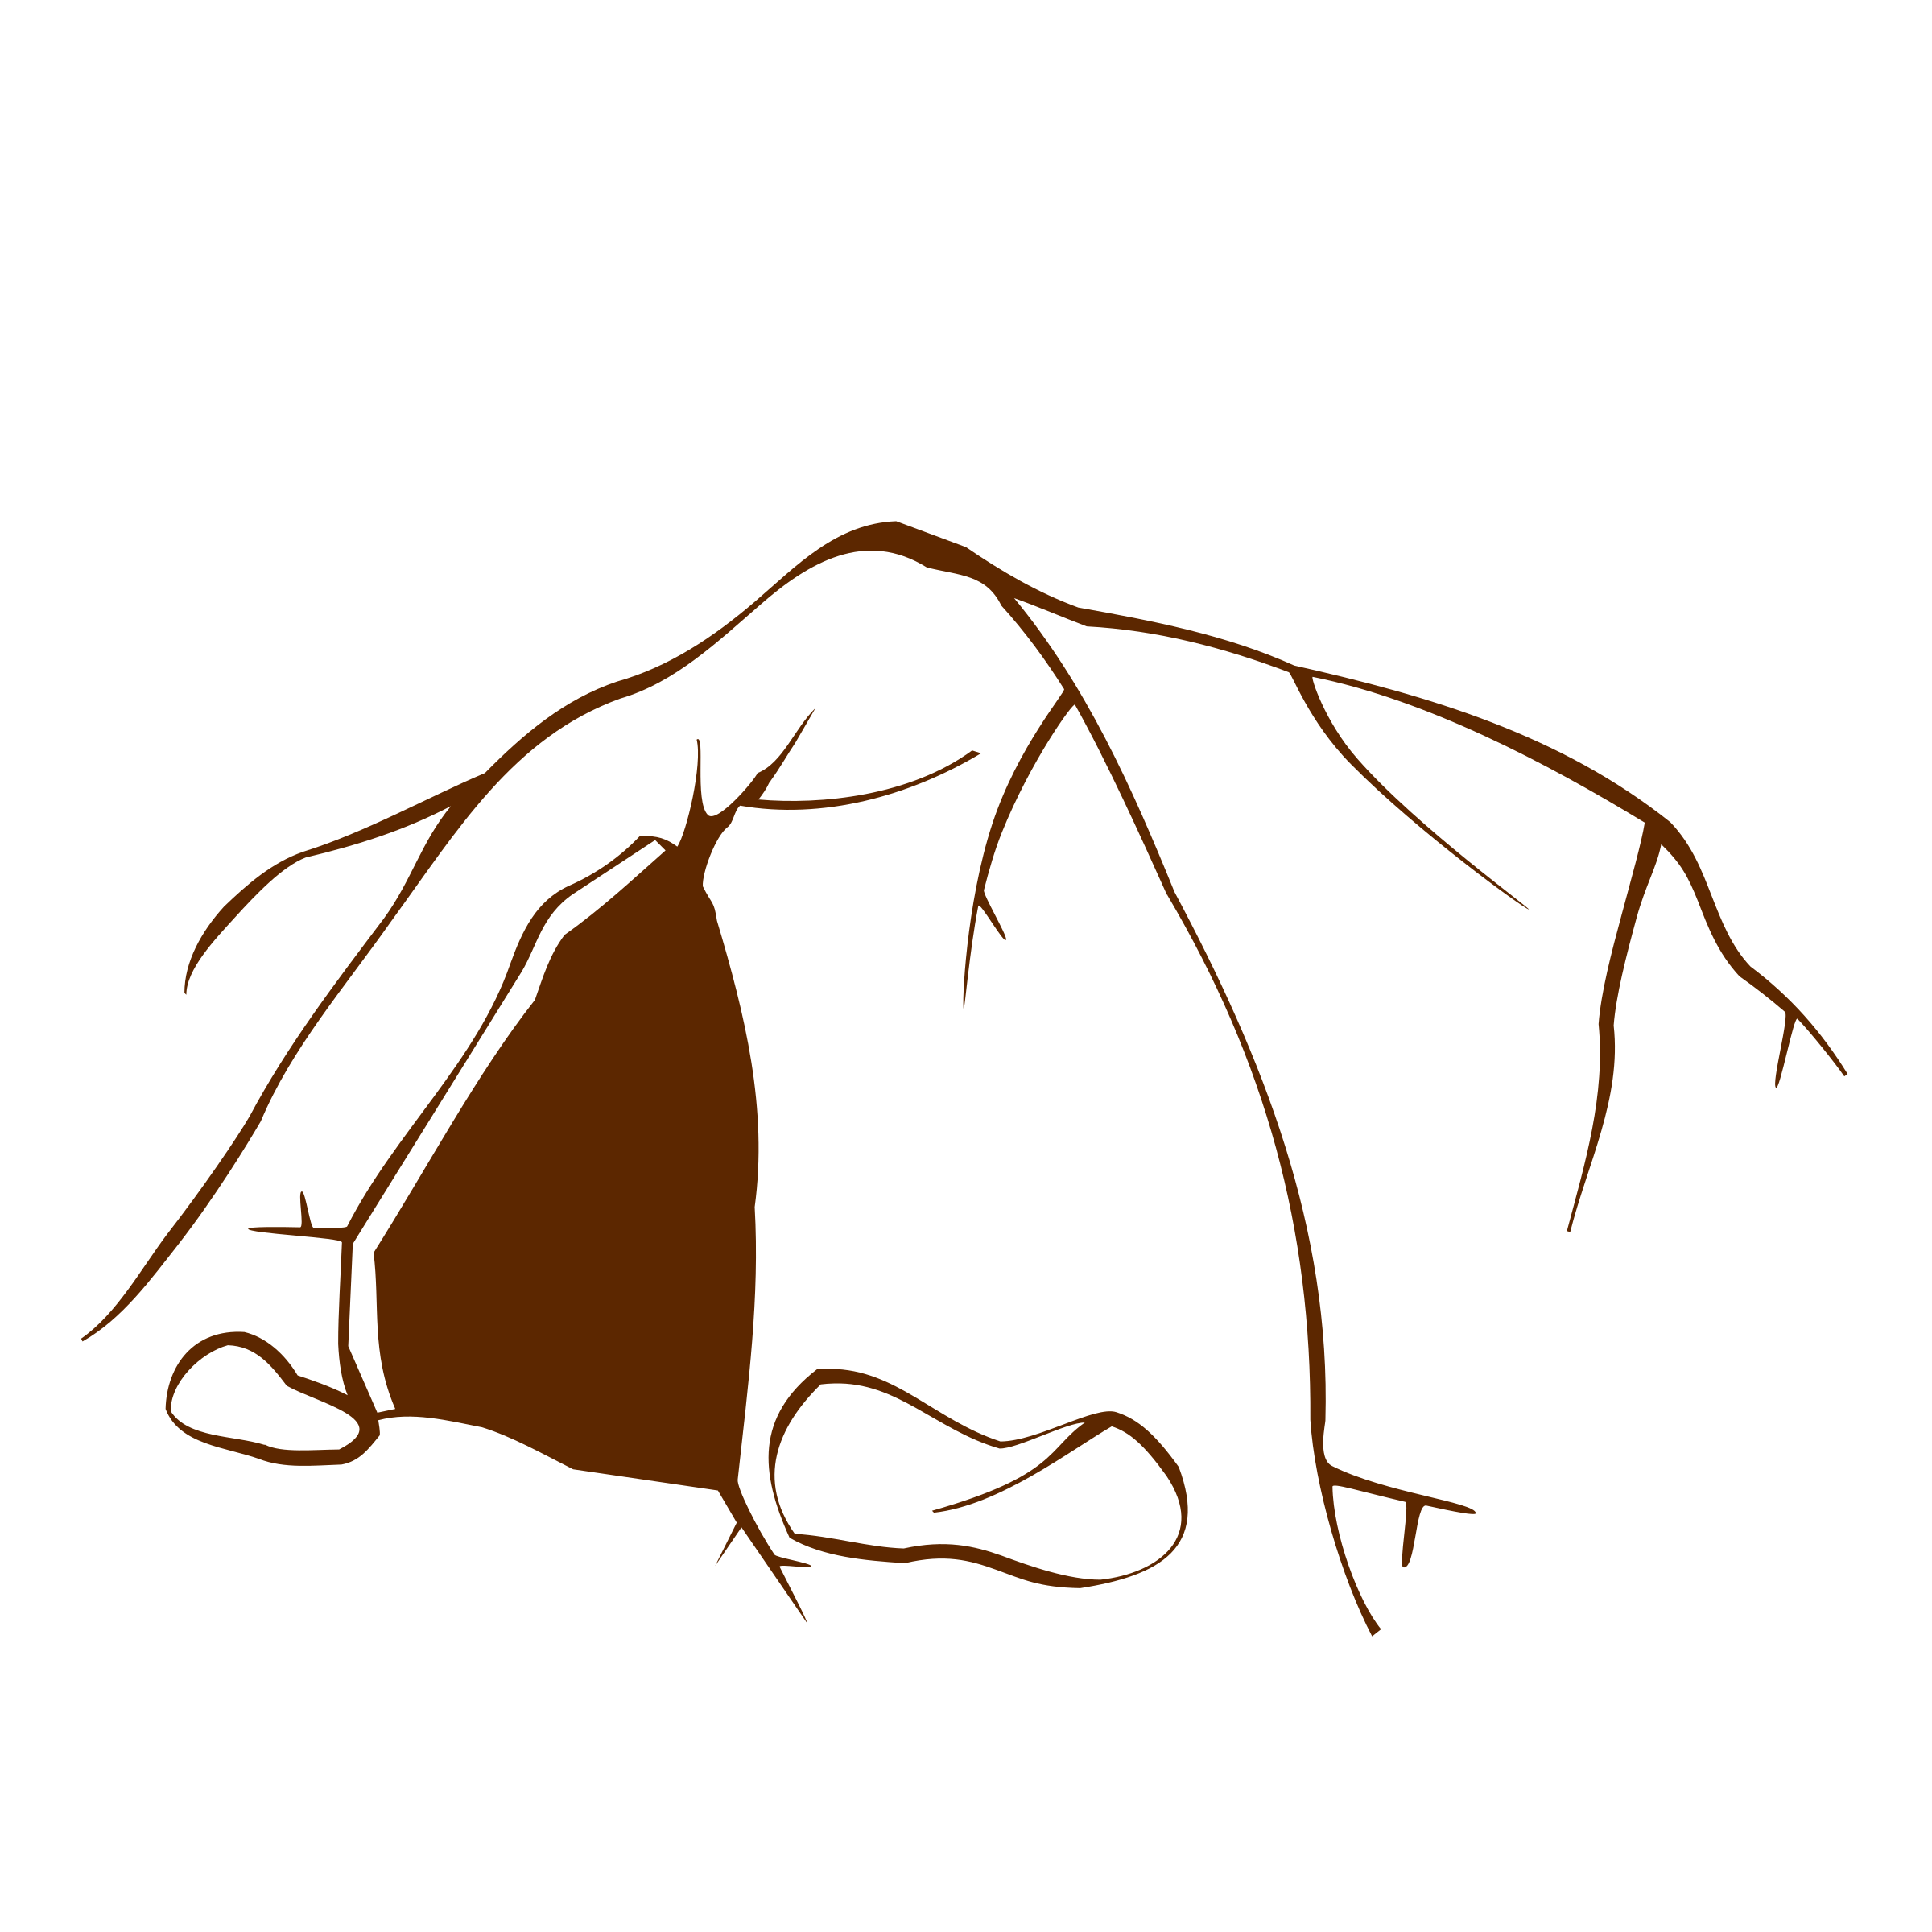 image library download Collection of free Caving clipart empty tomb